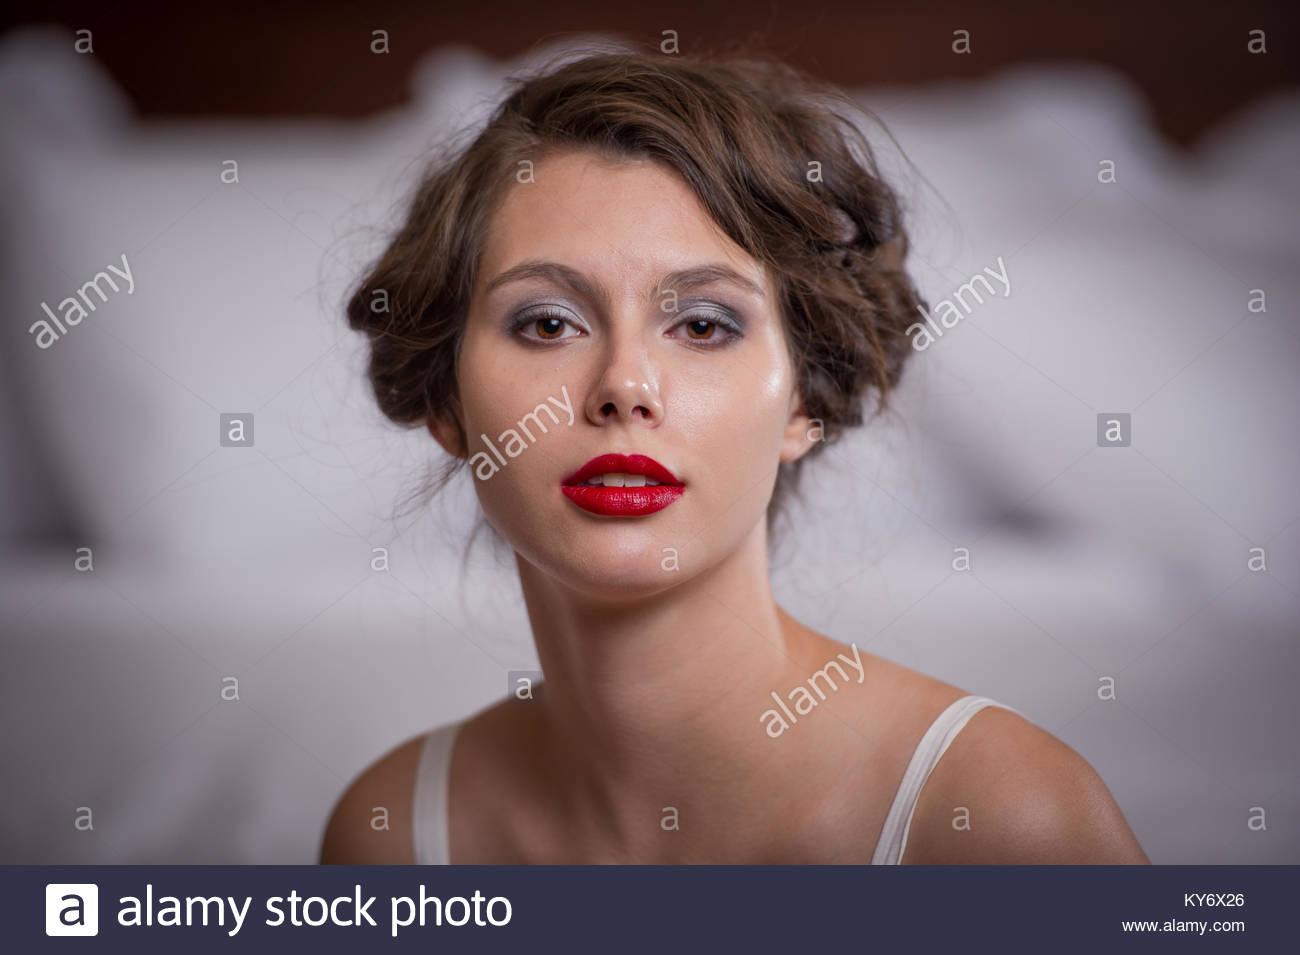 portrait of a young woman with a 1920's style hair do looking into the camera. - Stock Image